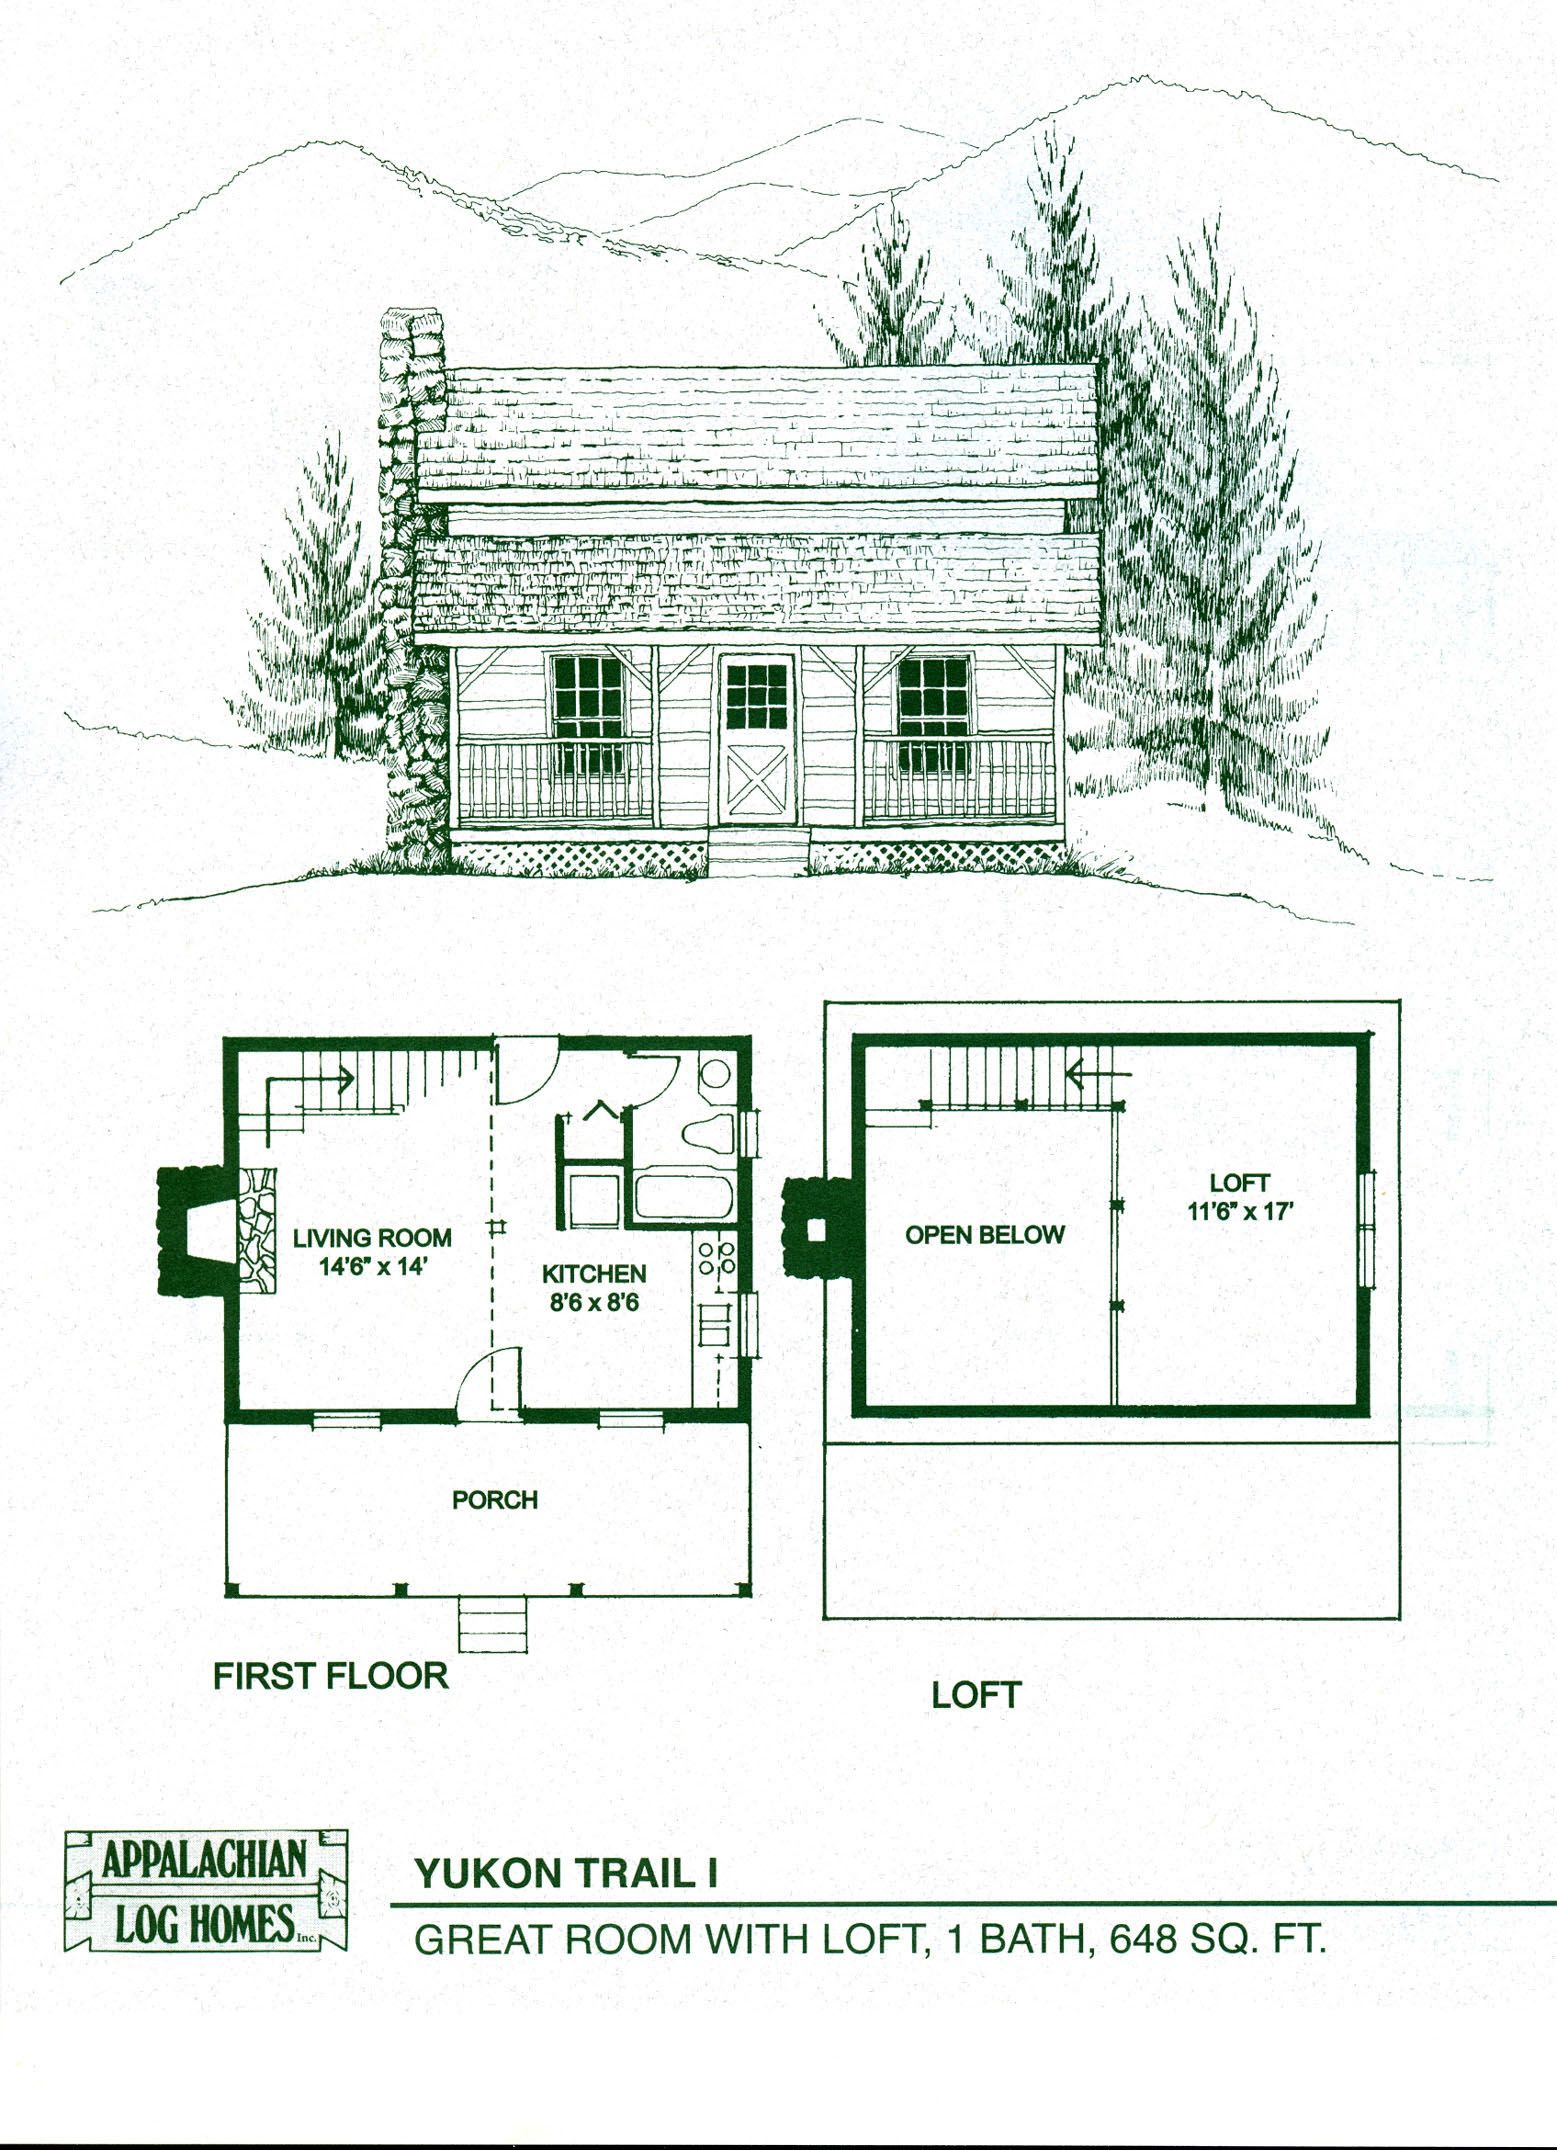 Log Cabin Sketches Log Cabin Drawings Log Home Package Kits Log Cabin Kits Yukon Trail I Log Cabin Floor Plans Cabin Plans With Loft Small Cabin Plans